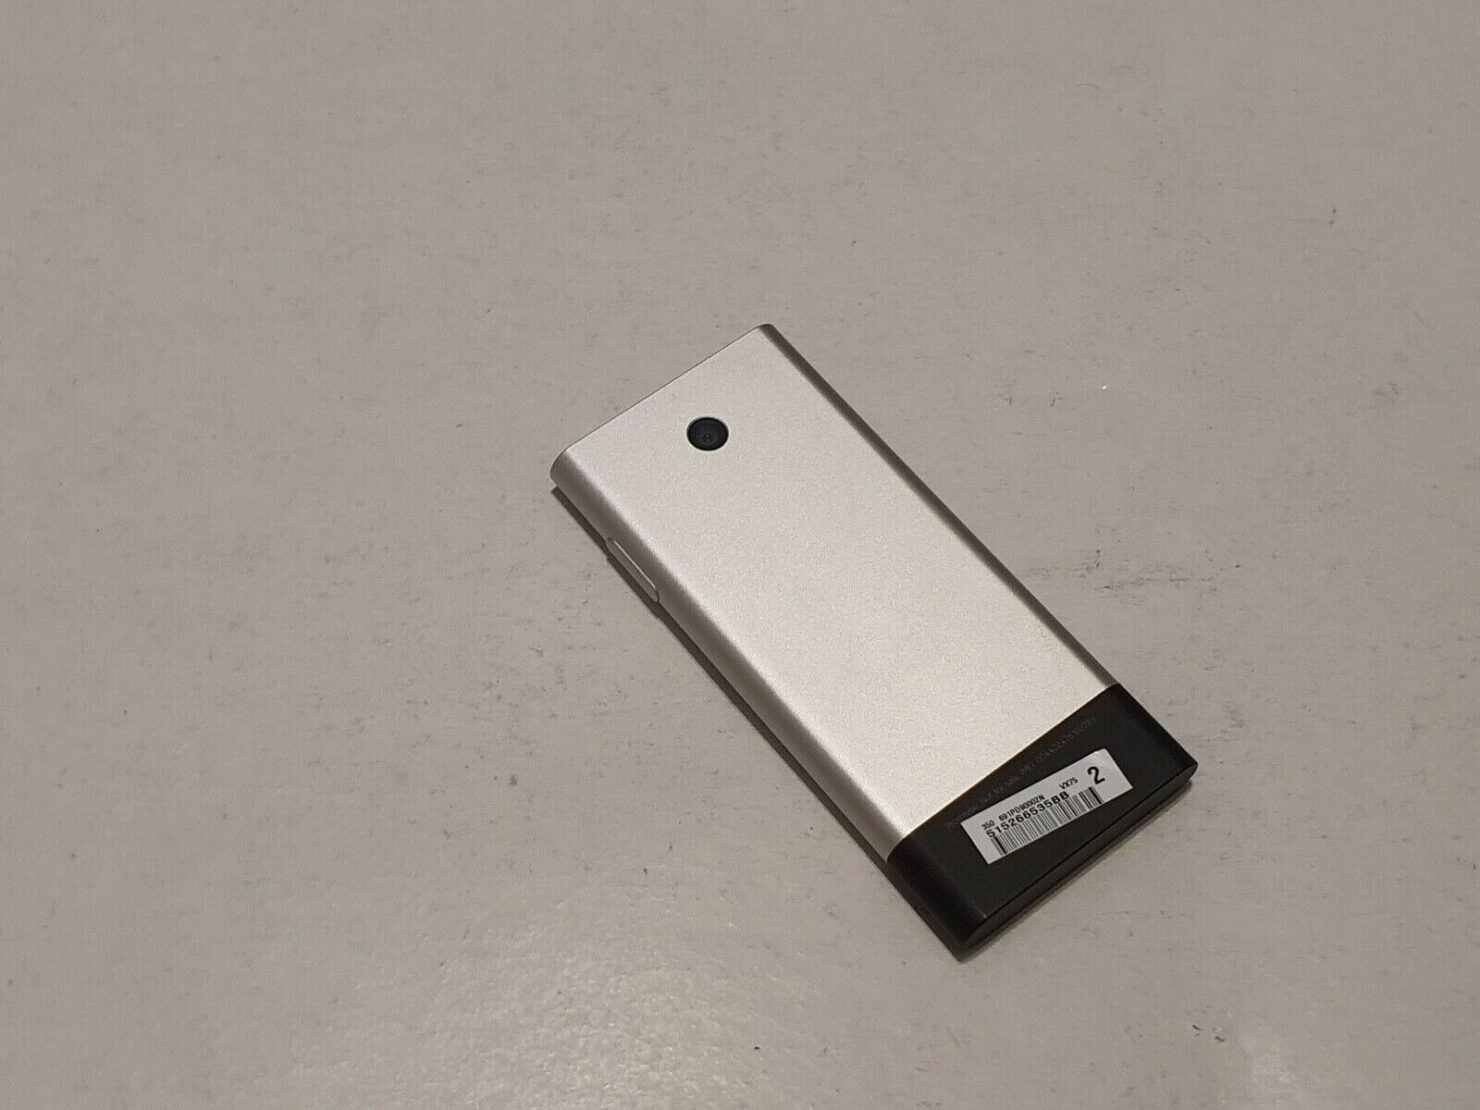 Nokia Ion Mini could have been one of the first Android-powered devices from the company